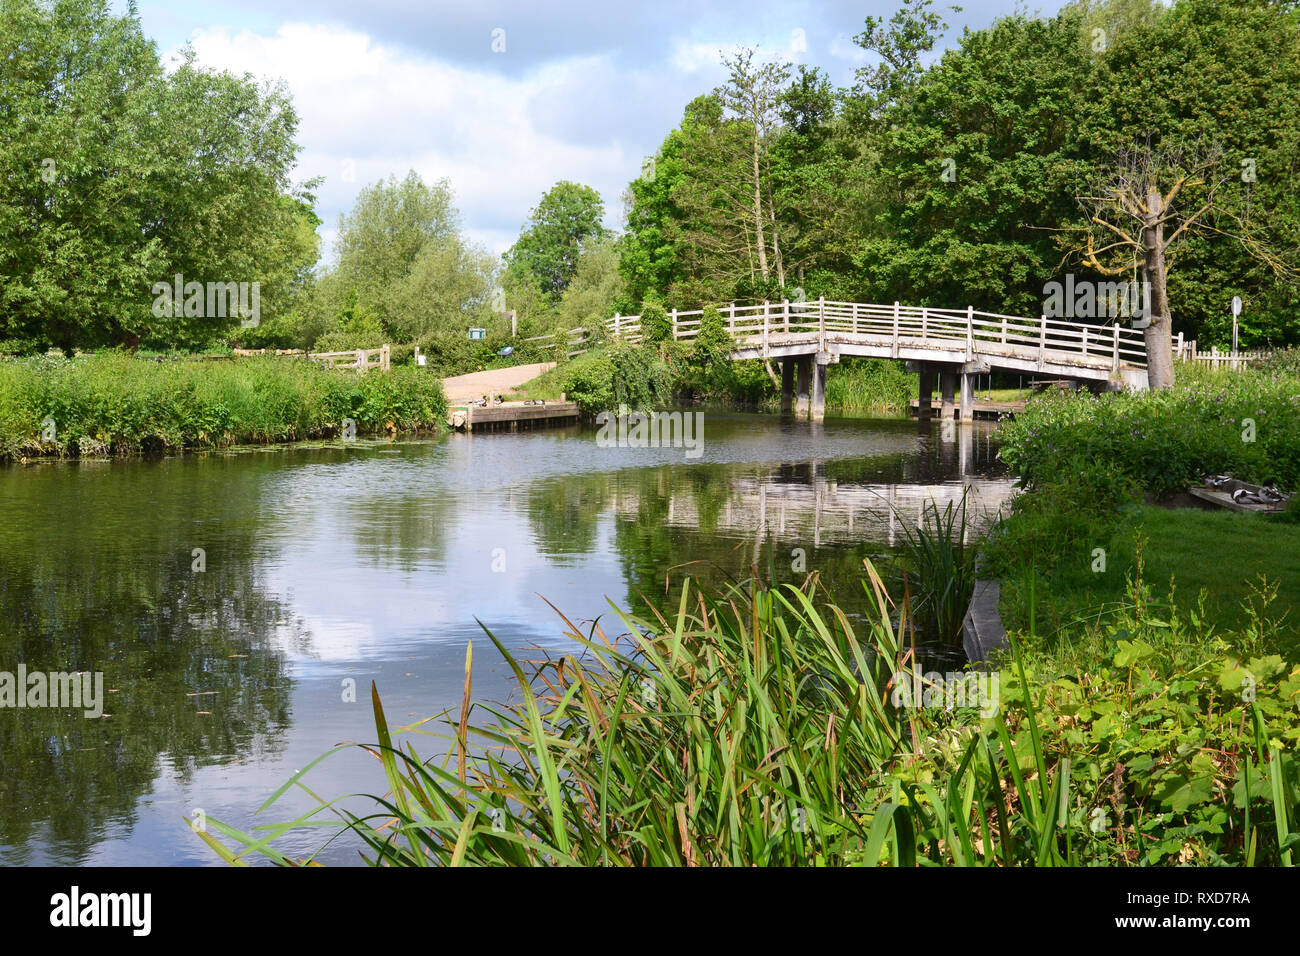 Bridge over the River Stour at Flatford, Suffolk, UK - Stock Image